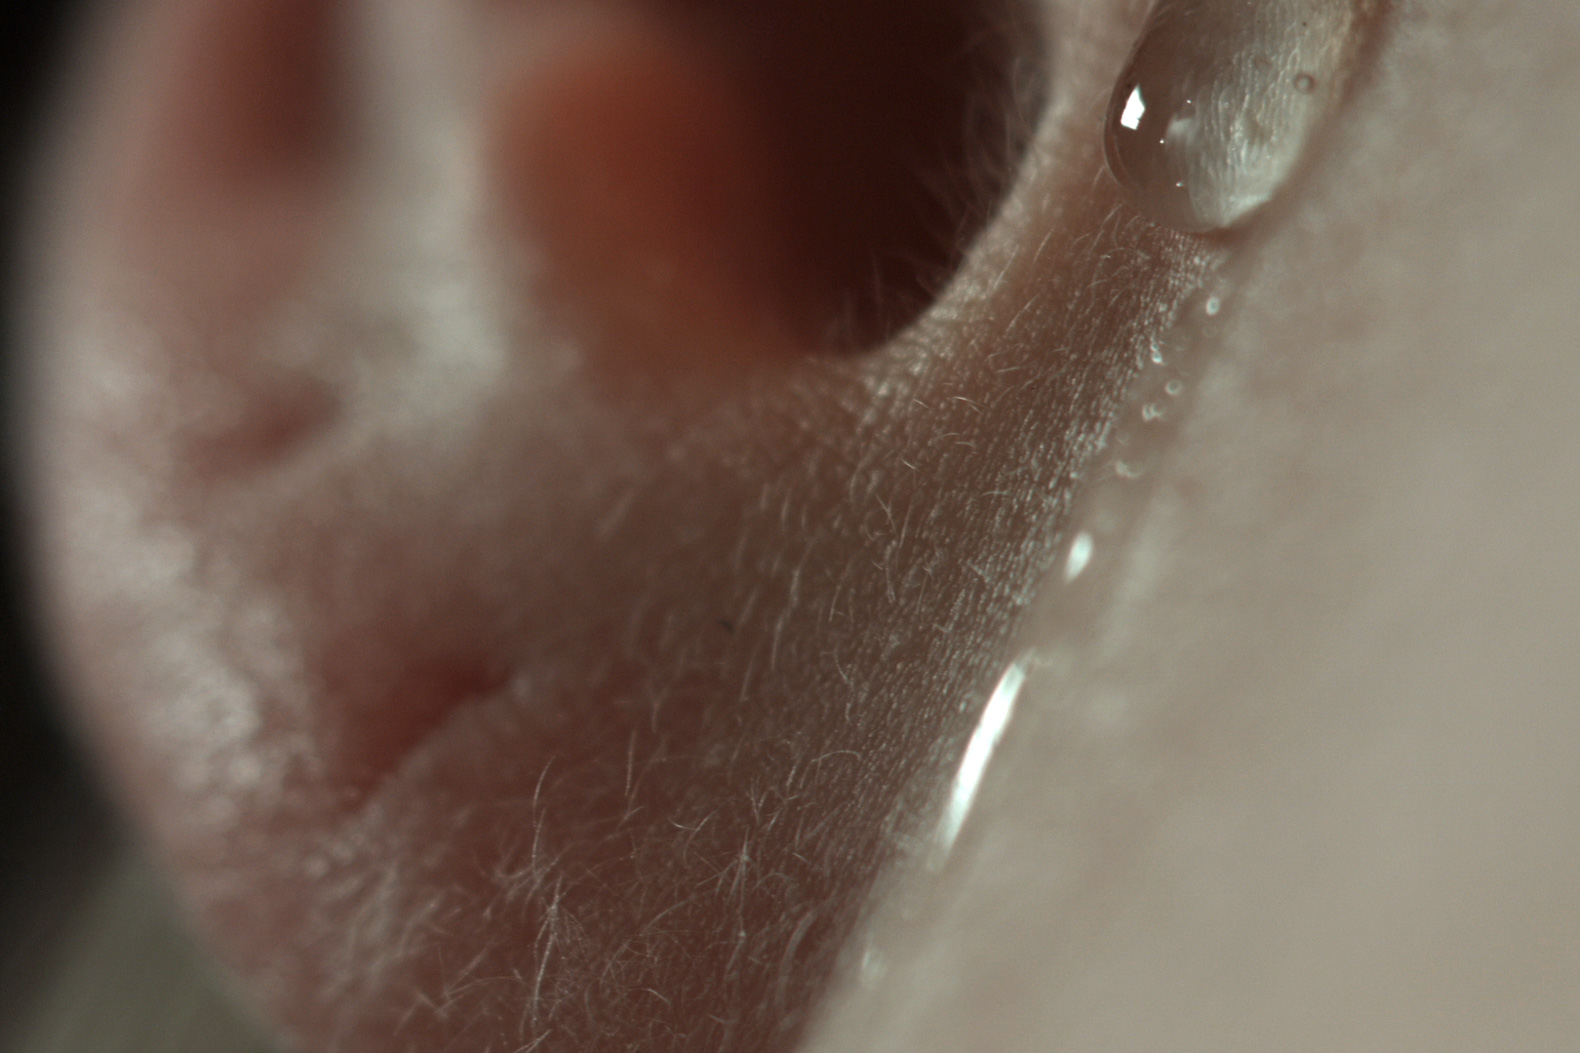 Ilona Sagar, Haptic Skins of a Glass Eye, 2015, video still.